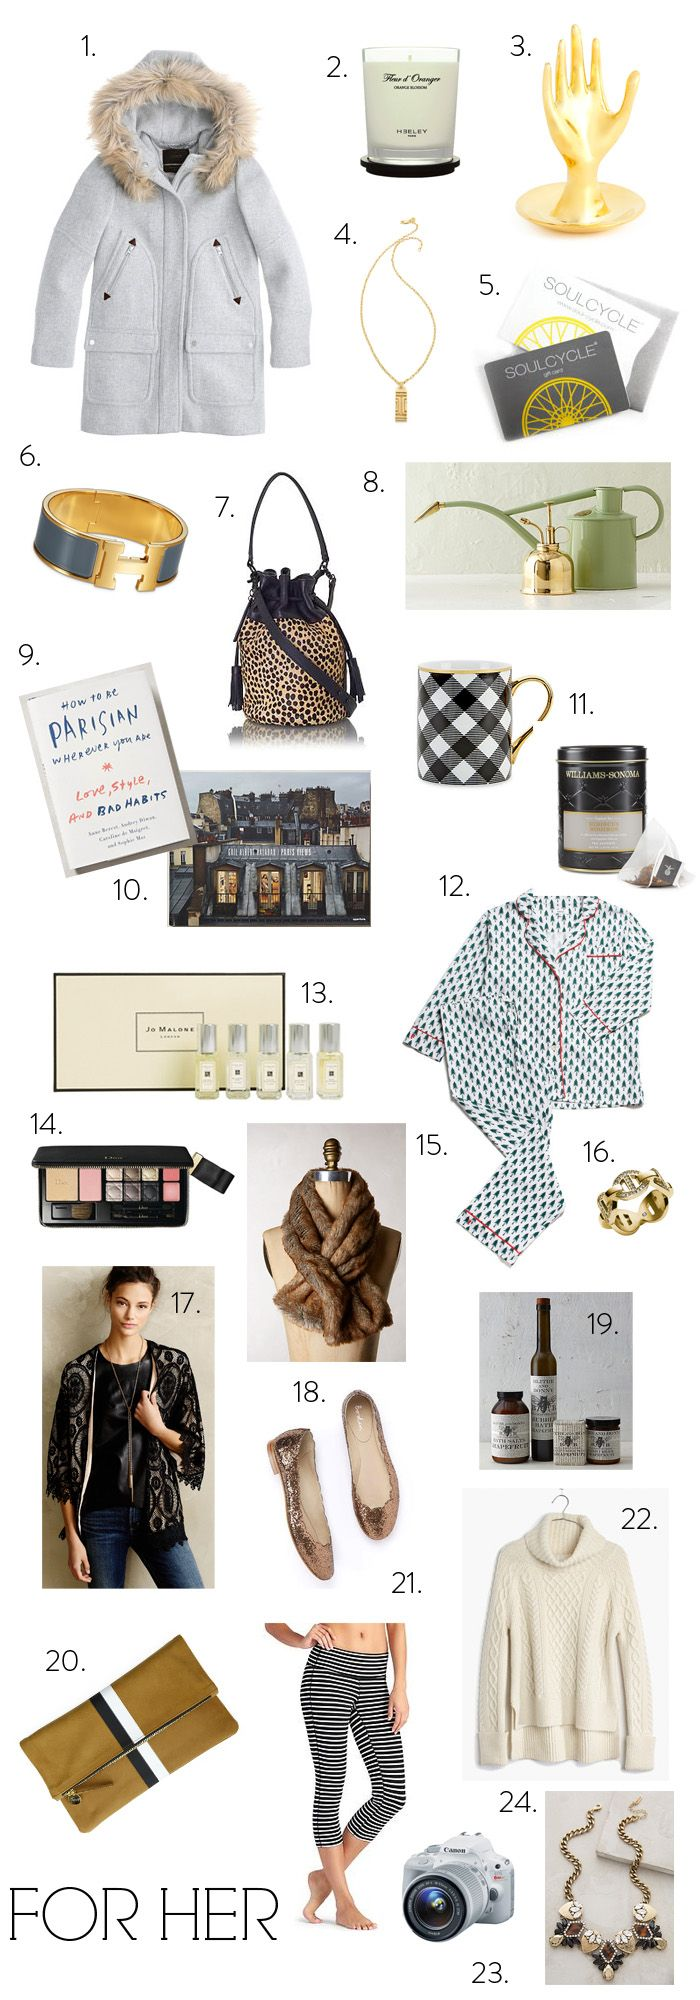 Gift Guides 2014: For Her (elements of style) | Pinterest | Gift ...